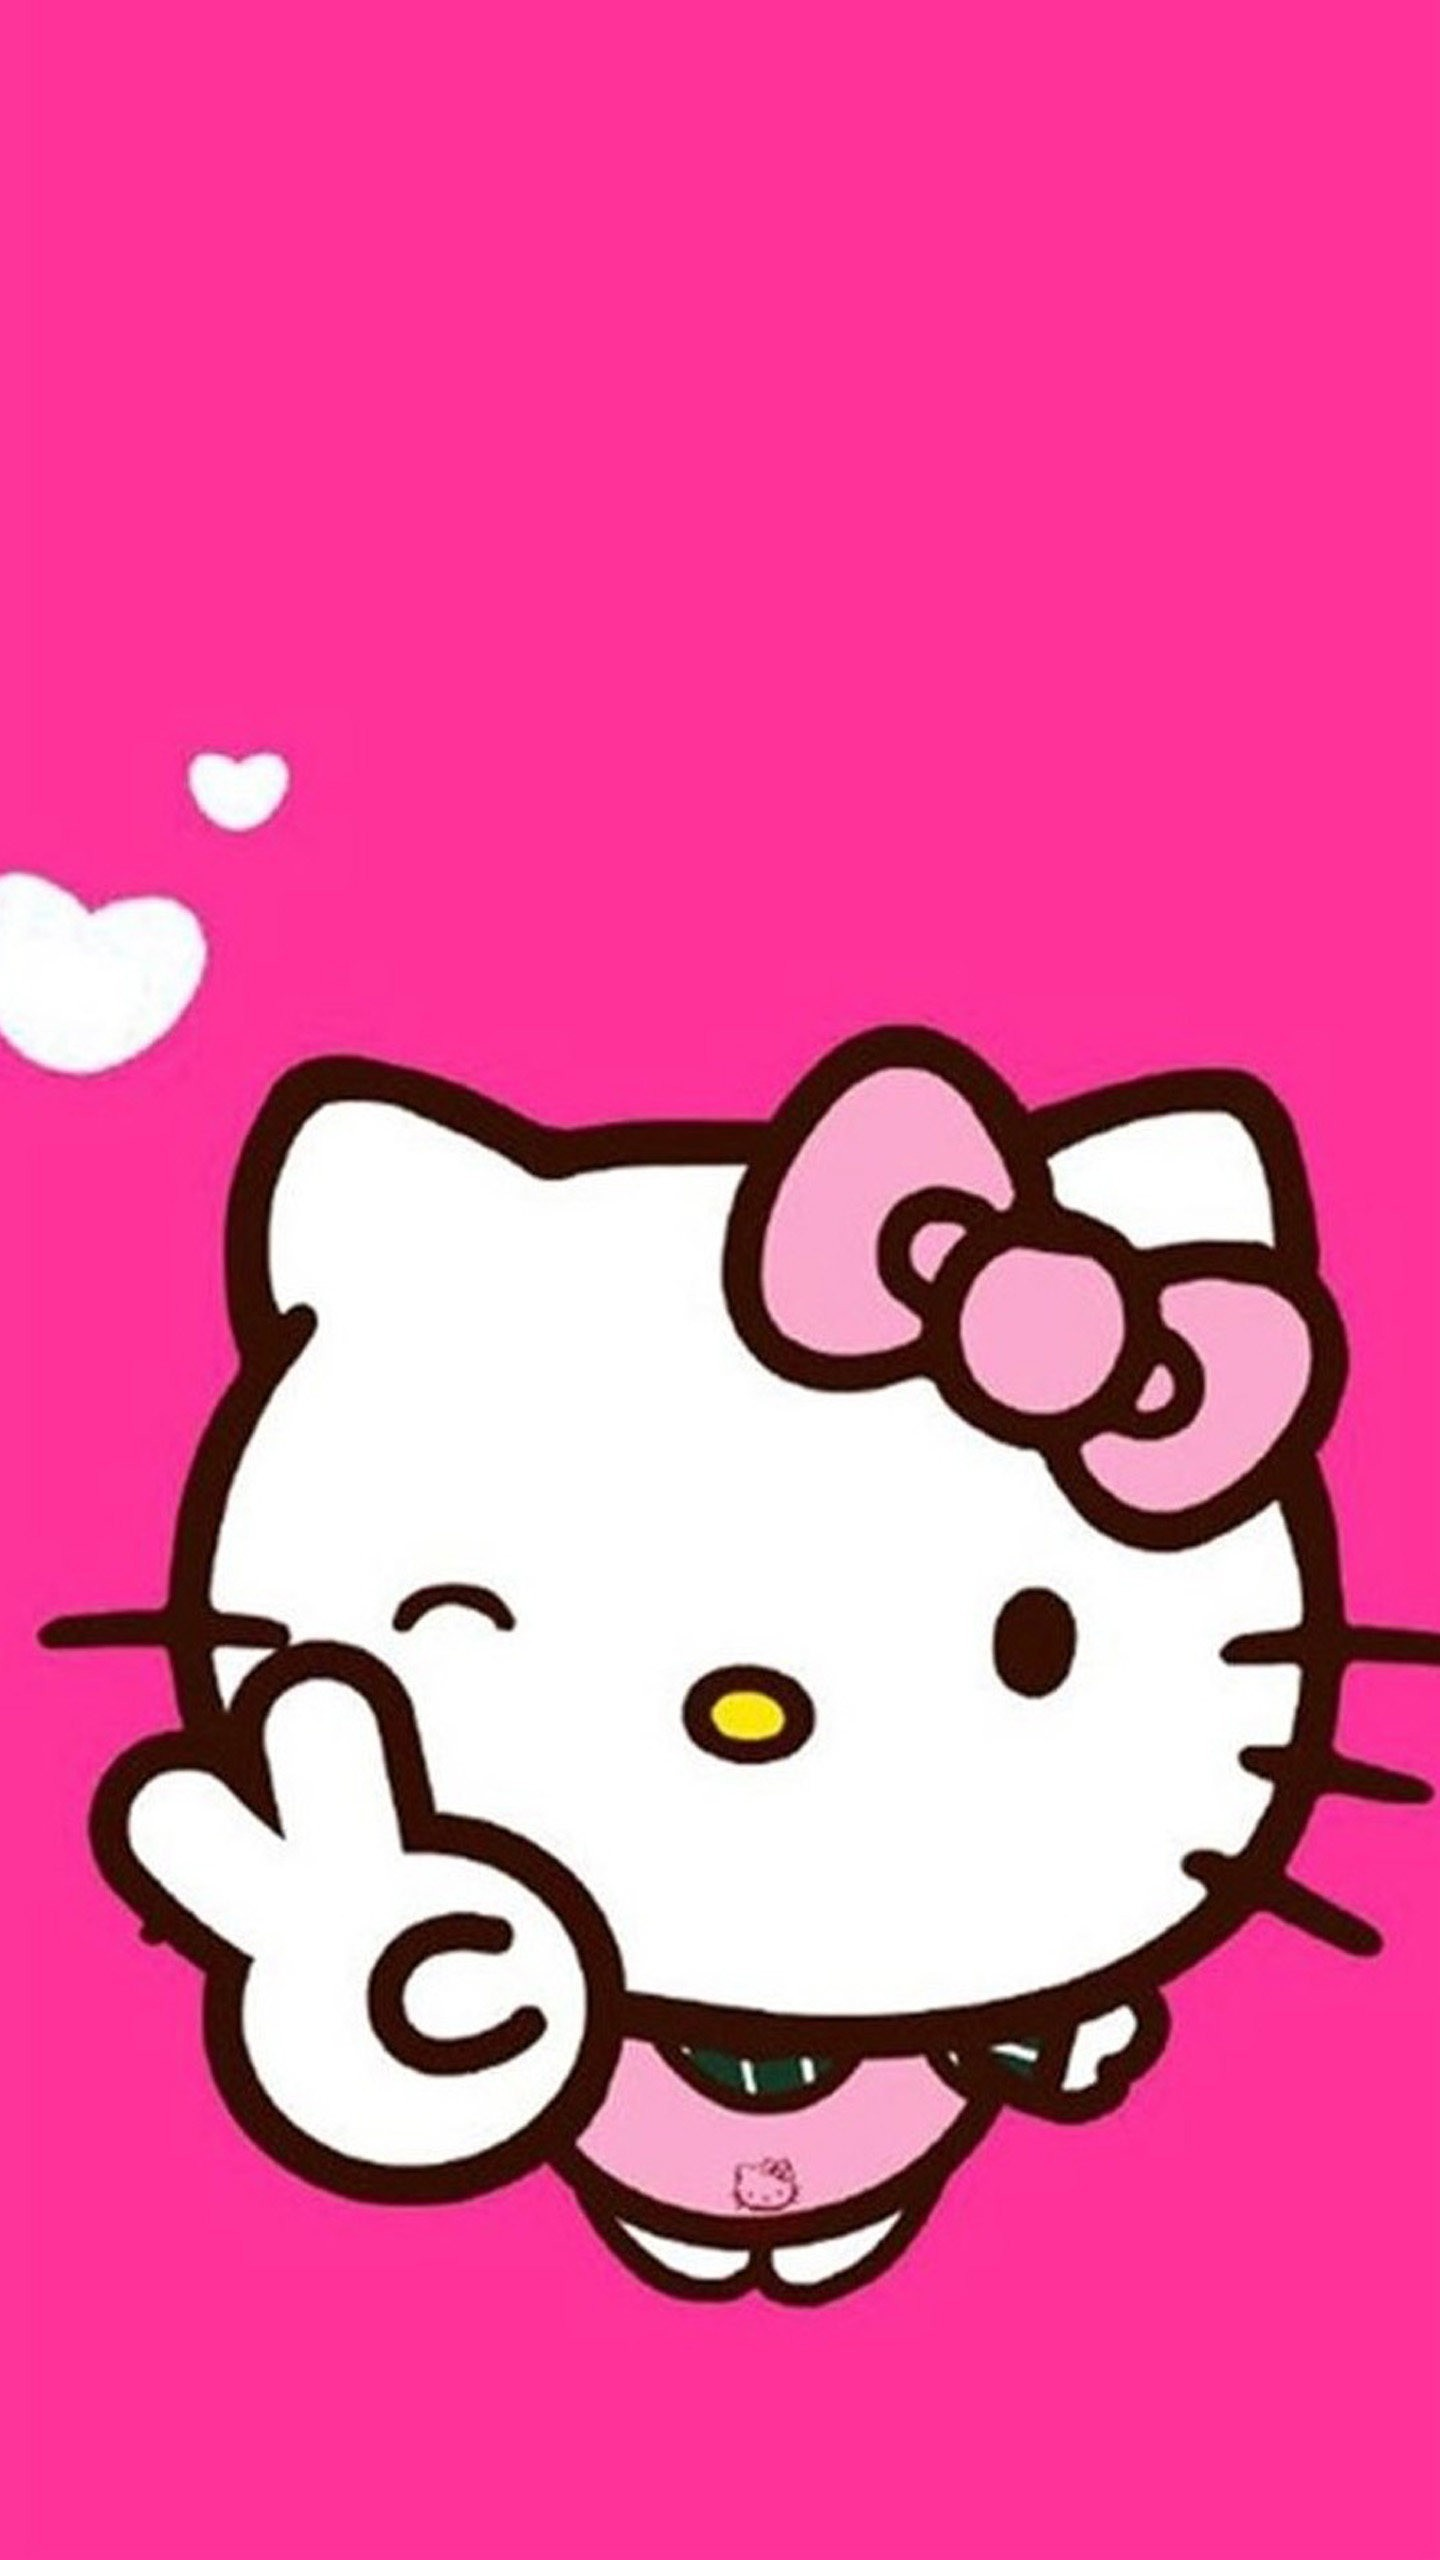 1440x2560 download-hello-kitty-desktop-background-wallpapers-1440×2560-pc-WTG3061359